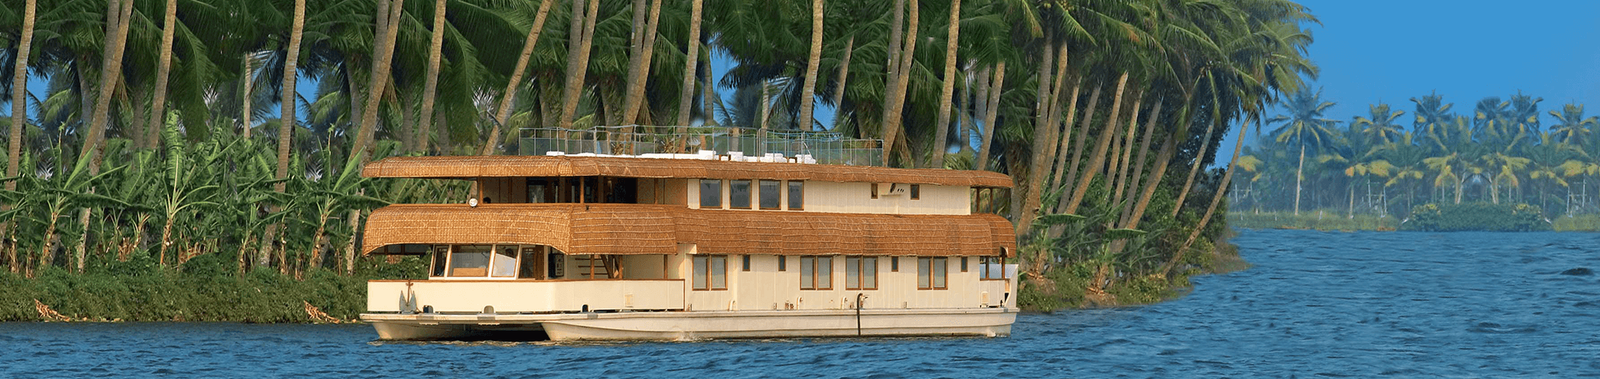 Enjoy a luxury houseboat cruise on a luxury Kerala holiday